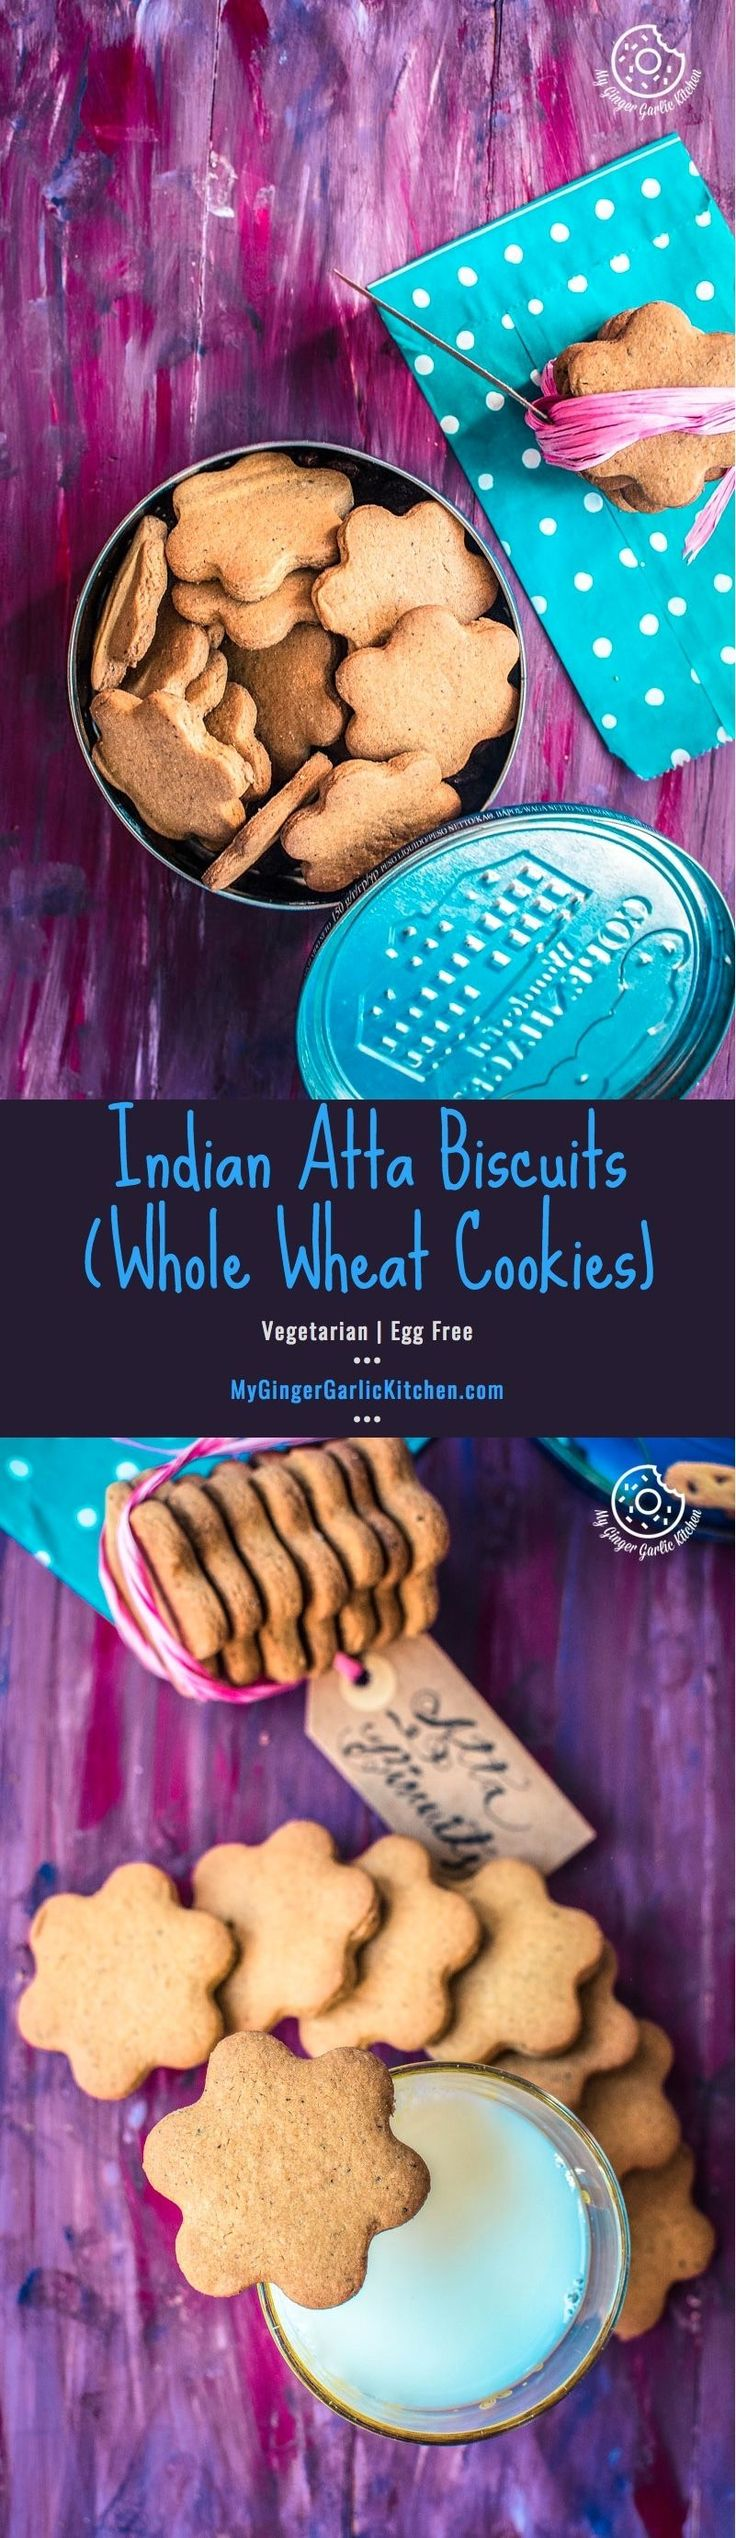 These everyday Atta Biscuits aka Whole Wheat Indian Cookies are popular tea time cookies in India. They are so easy, eggless and crispy and scented with a good amount of cardamom. From: mygingergarlickitchen.com/ #IndianCookies #Biscuits #Indianbaking